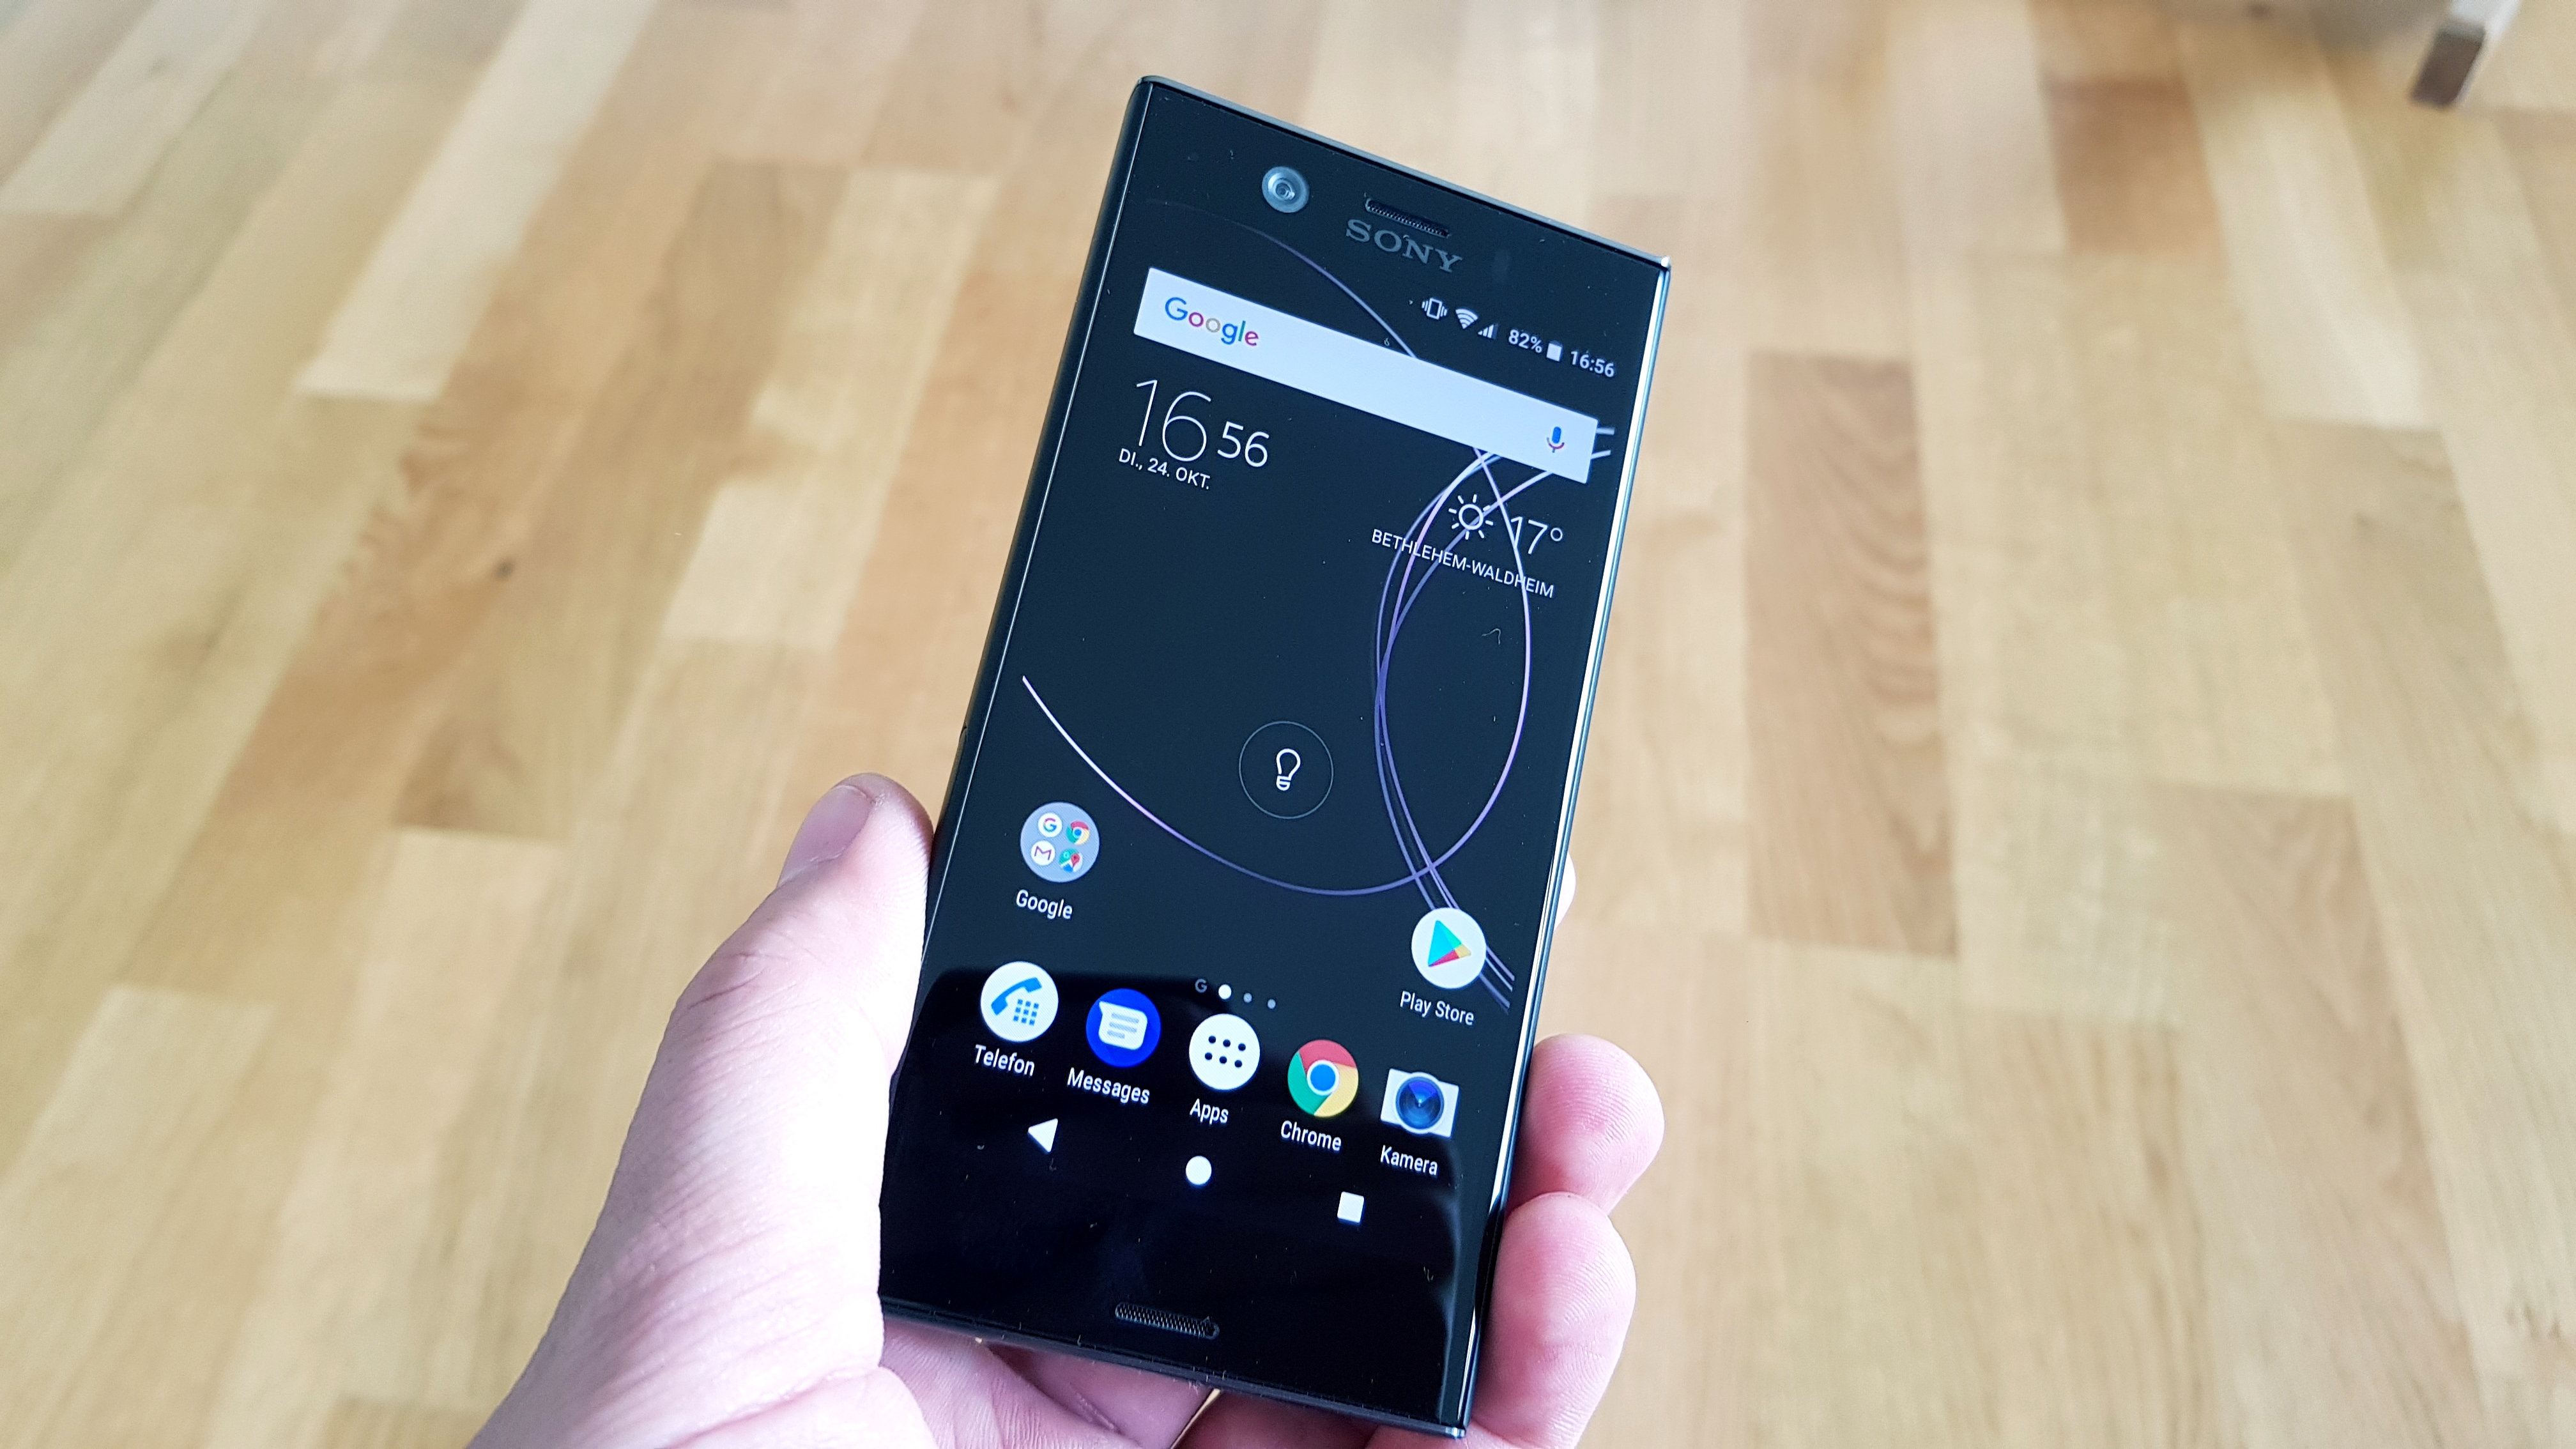 sony xperia xz1 compact im test klein aber oho. Black Bedroom Furniture Sets. Home Design Ideas